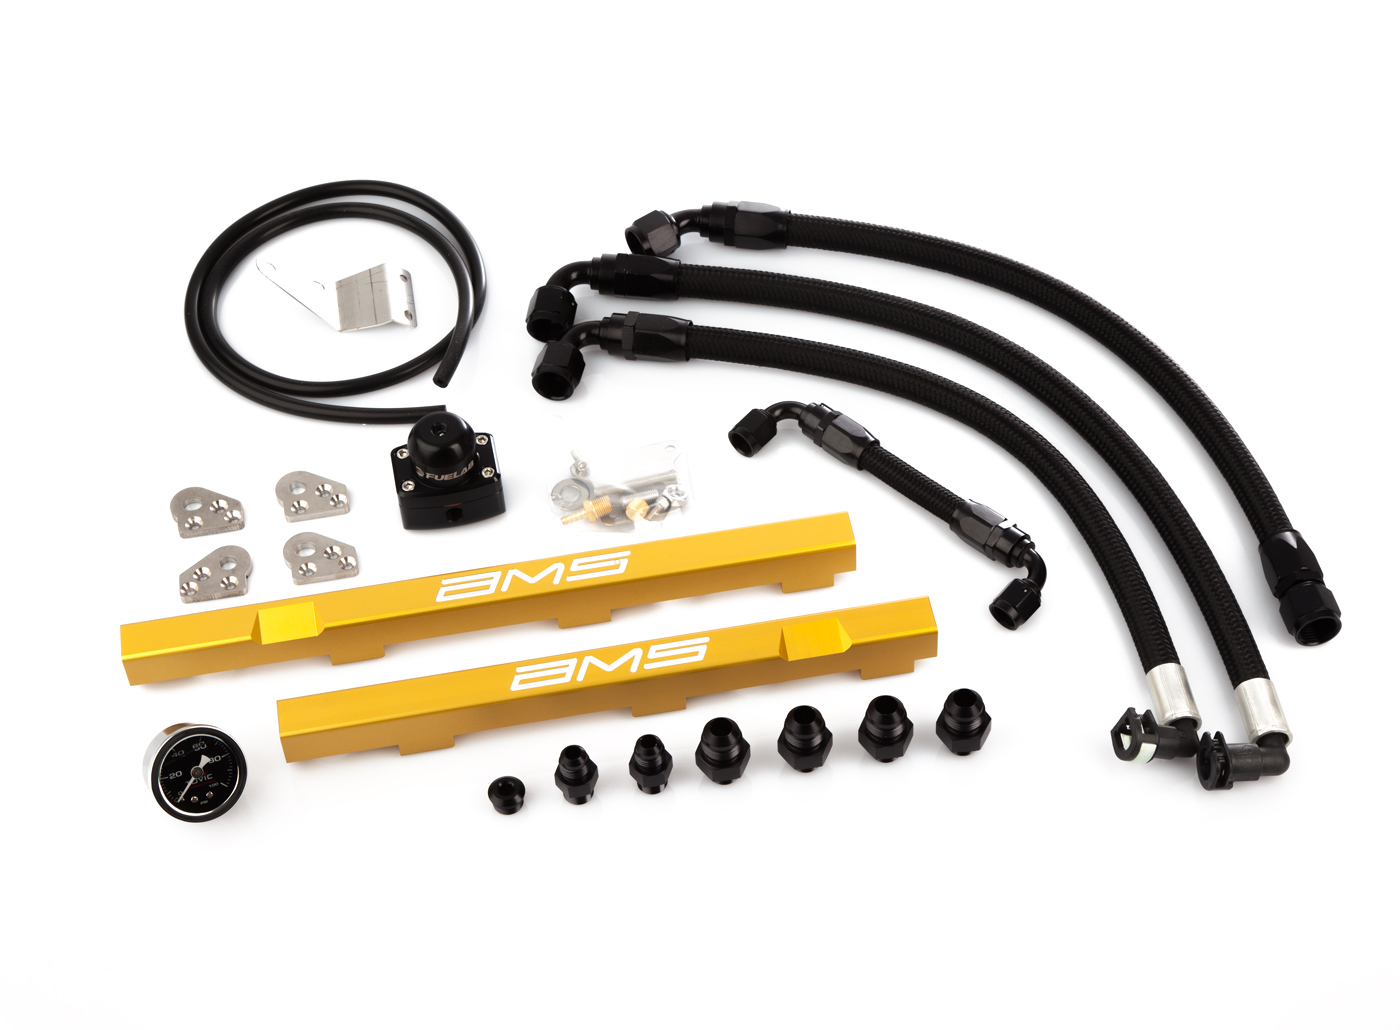 Ams Alpha Fuel Rail Upgrade Package For Your Nissan Gtr Ctd Filter Germany Professional Tuning Shop